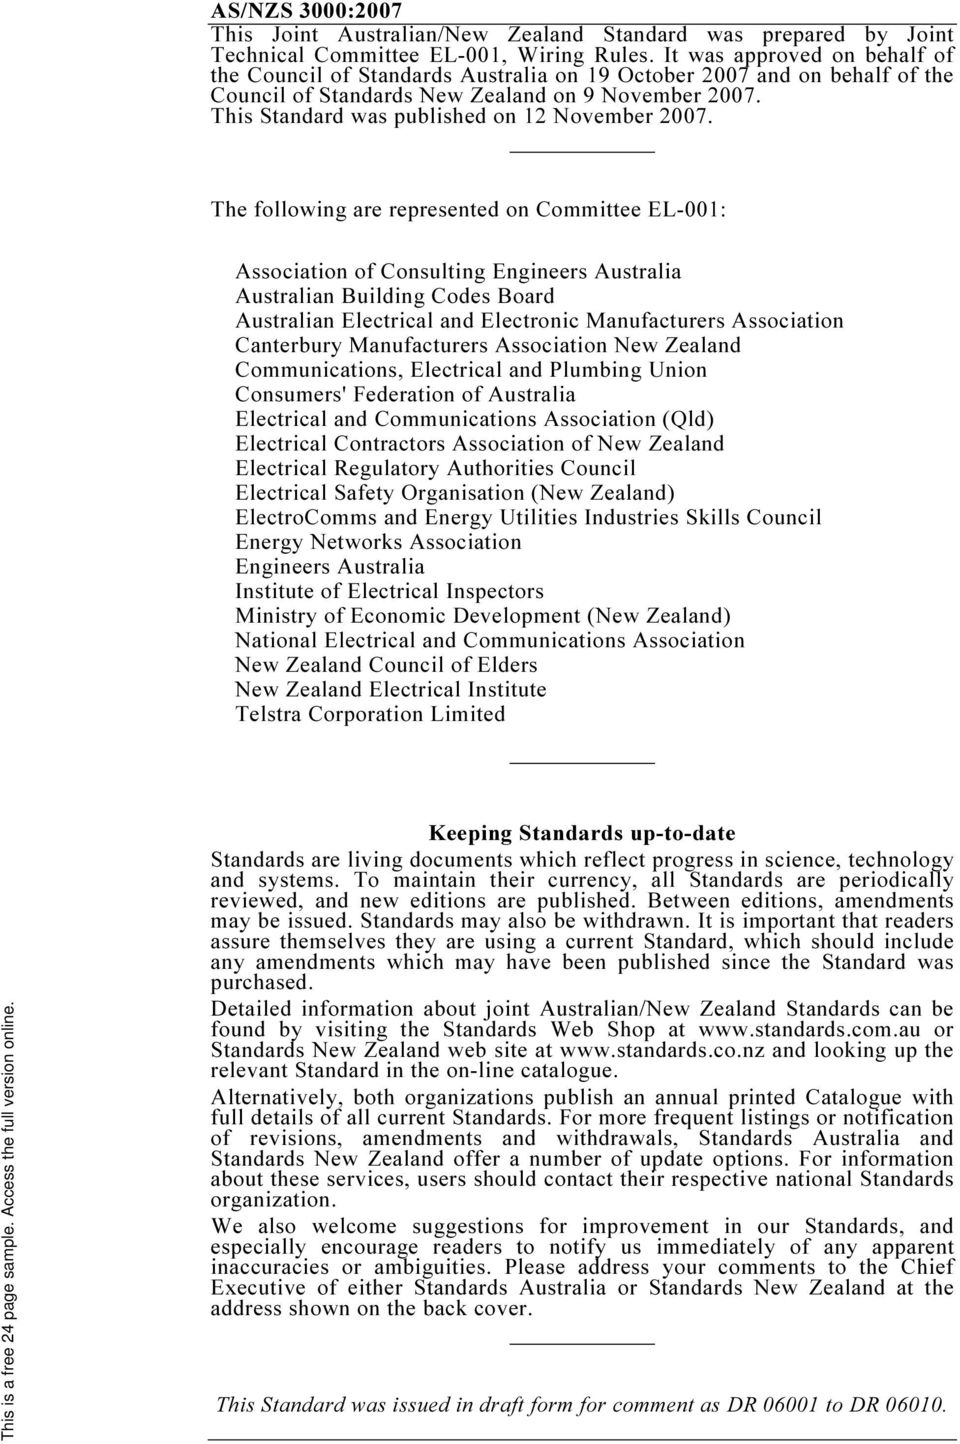 Asnzs 30002007 wiring rules pdf this standard was published on 12 november 2007 keyboard keysfo Images